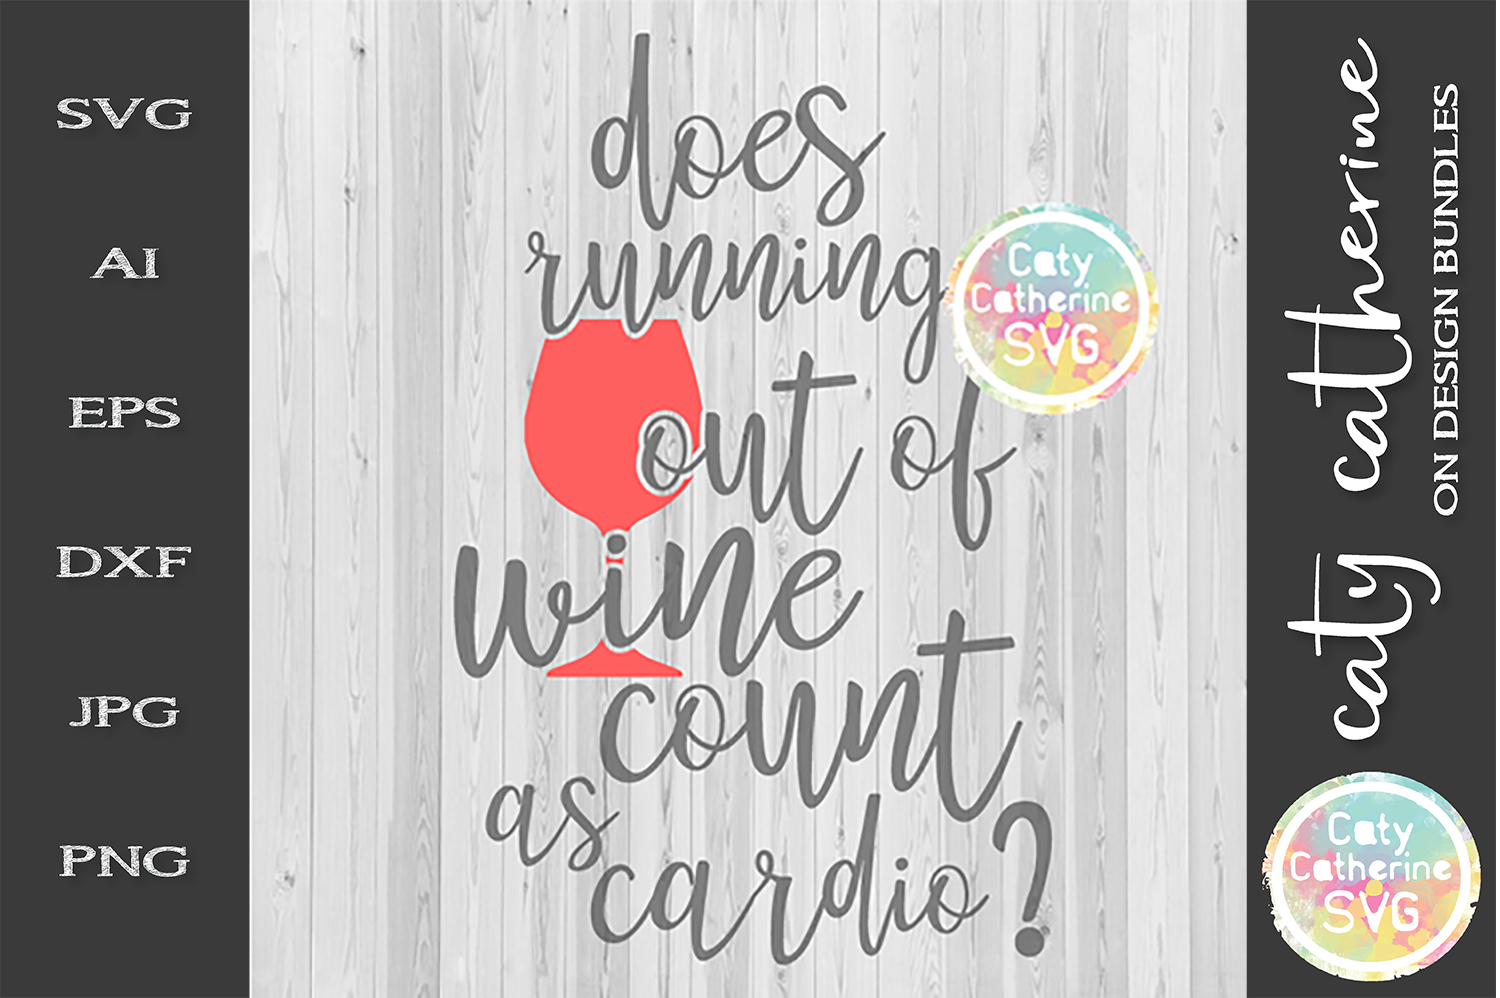 Does Running Out Of Wine Count As Cardio? SVG Cut File example image 1